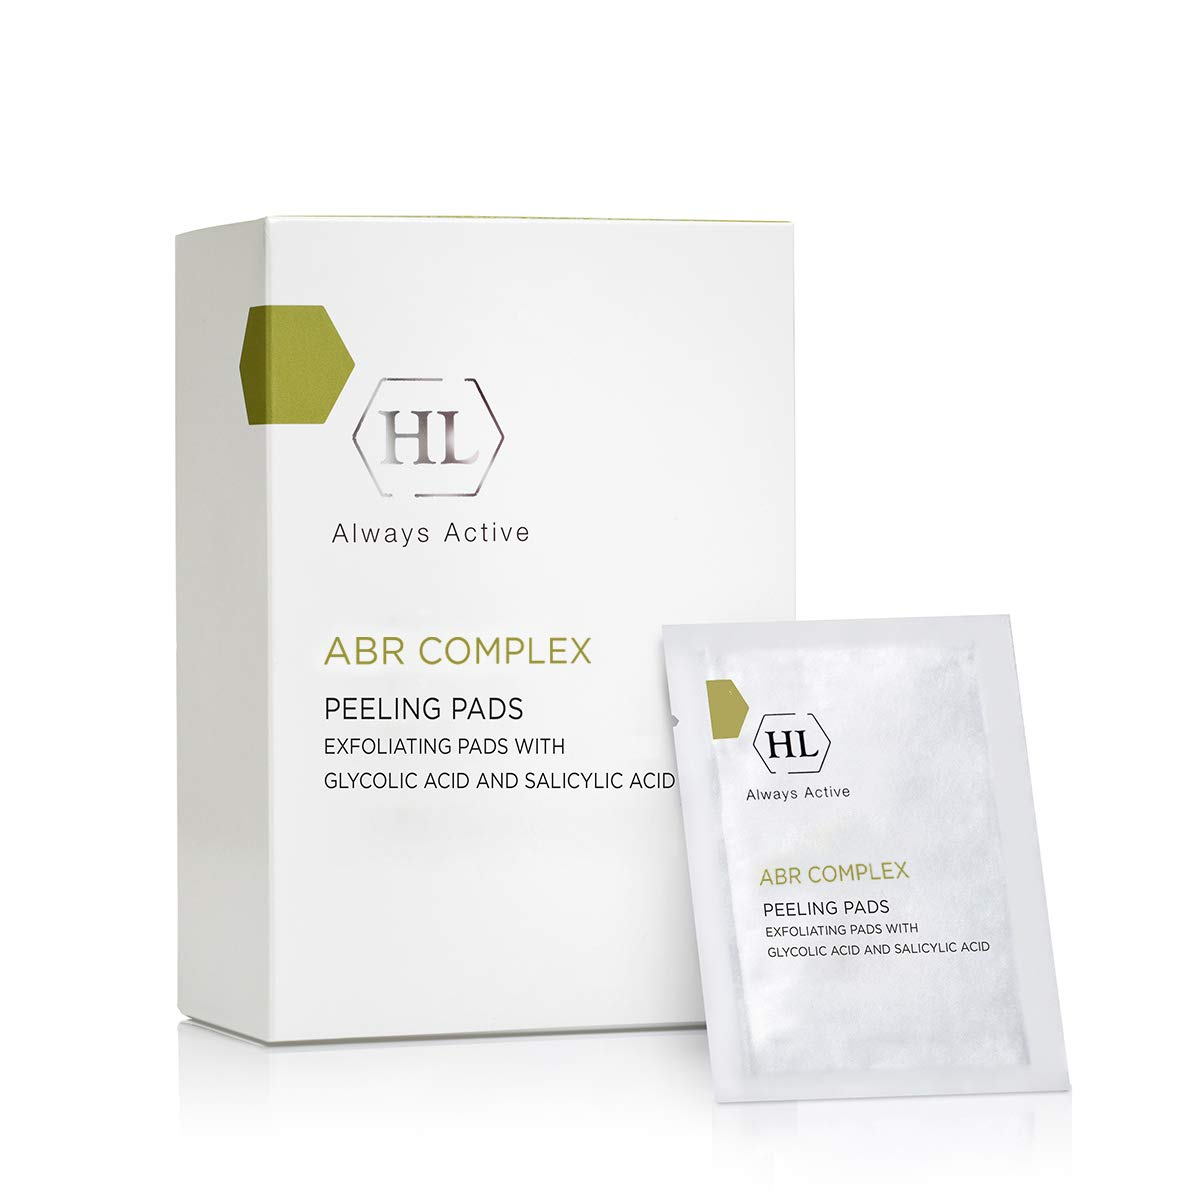 HL Holy Land Cosmetics ABR Peeling Pads with Glycolic Acid, Salicylic Acid and Retinol to Smooth and Brighten Skin, 24 ct.